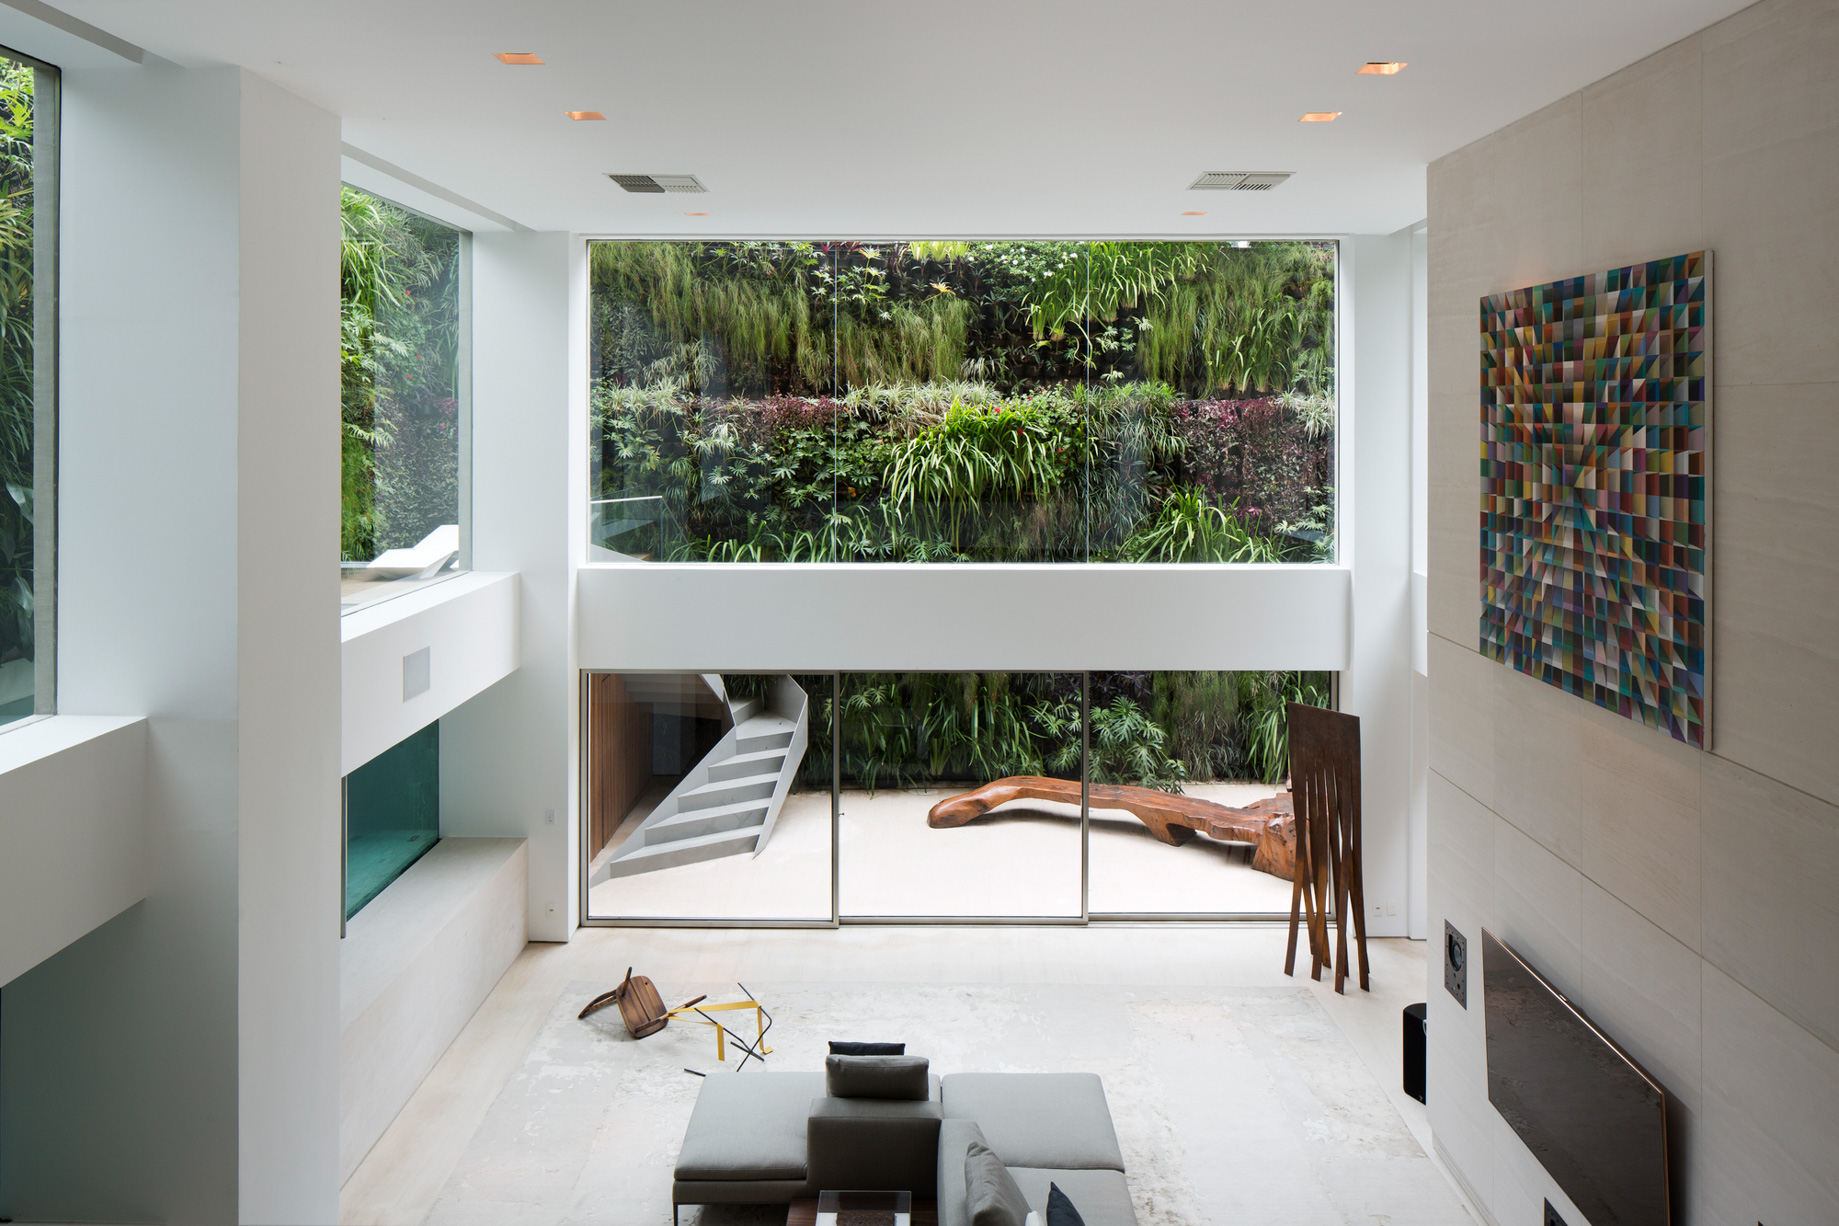 Panorama Swimming Pool House – Vila Nova Conceicao, Sao Paulo, Brazil